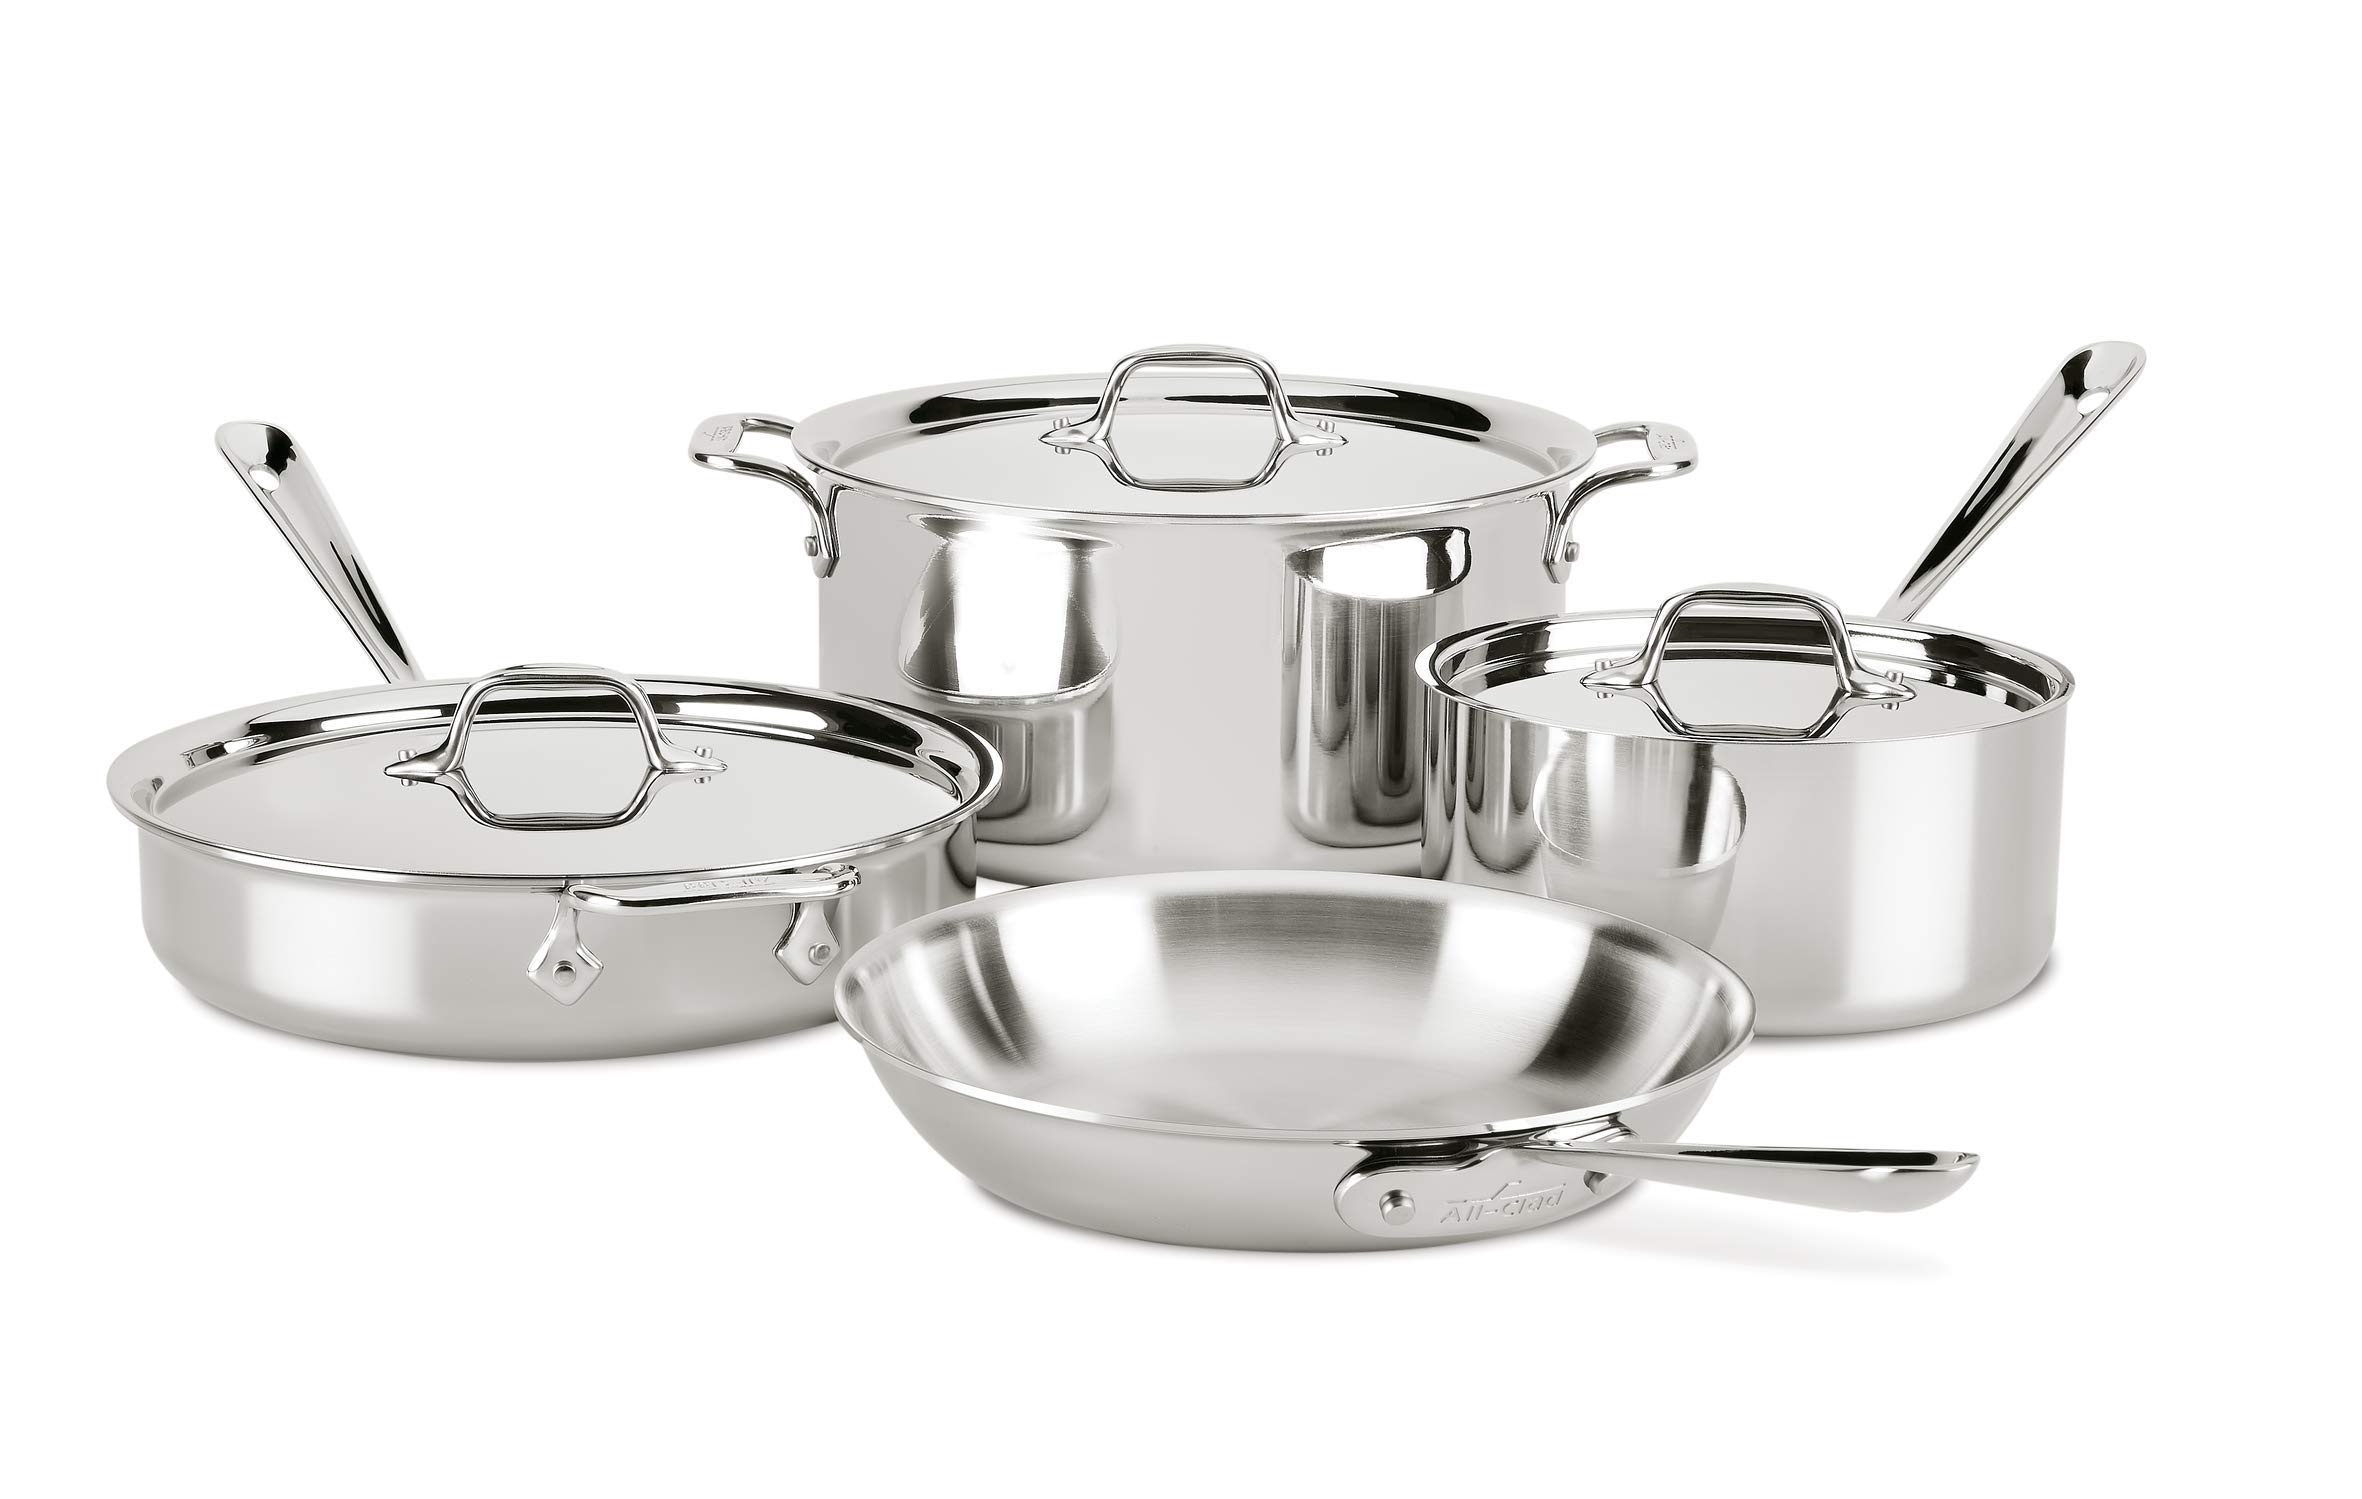 All-Clad D3 7-Piece Stainless Steel Dishwasher Safe Induction Compatible Cookware Set, Tri-Ply Bonded, Silver